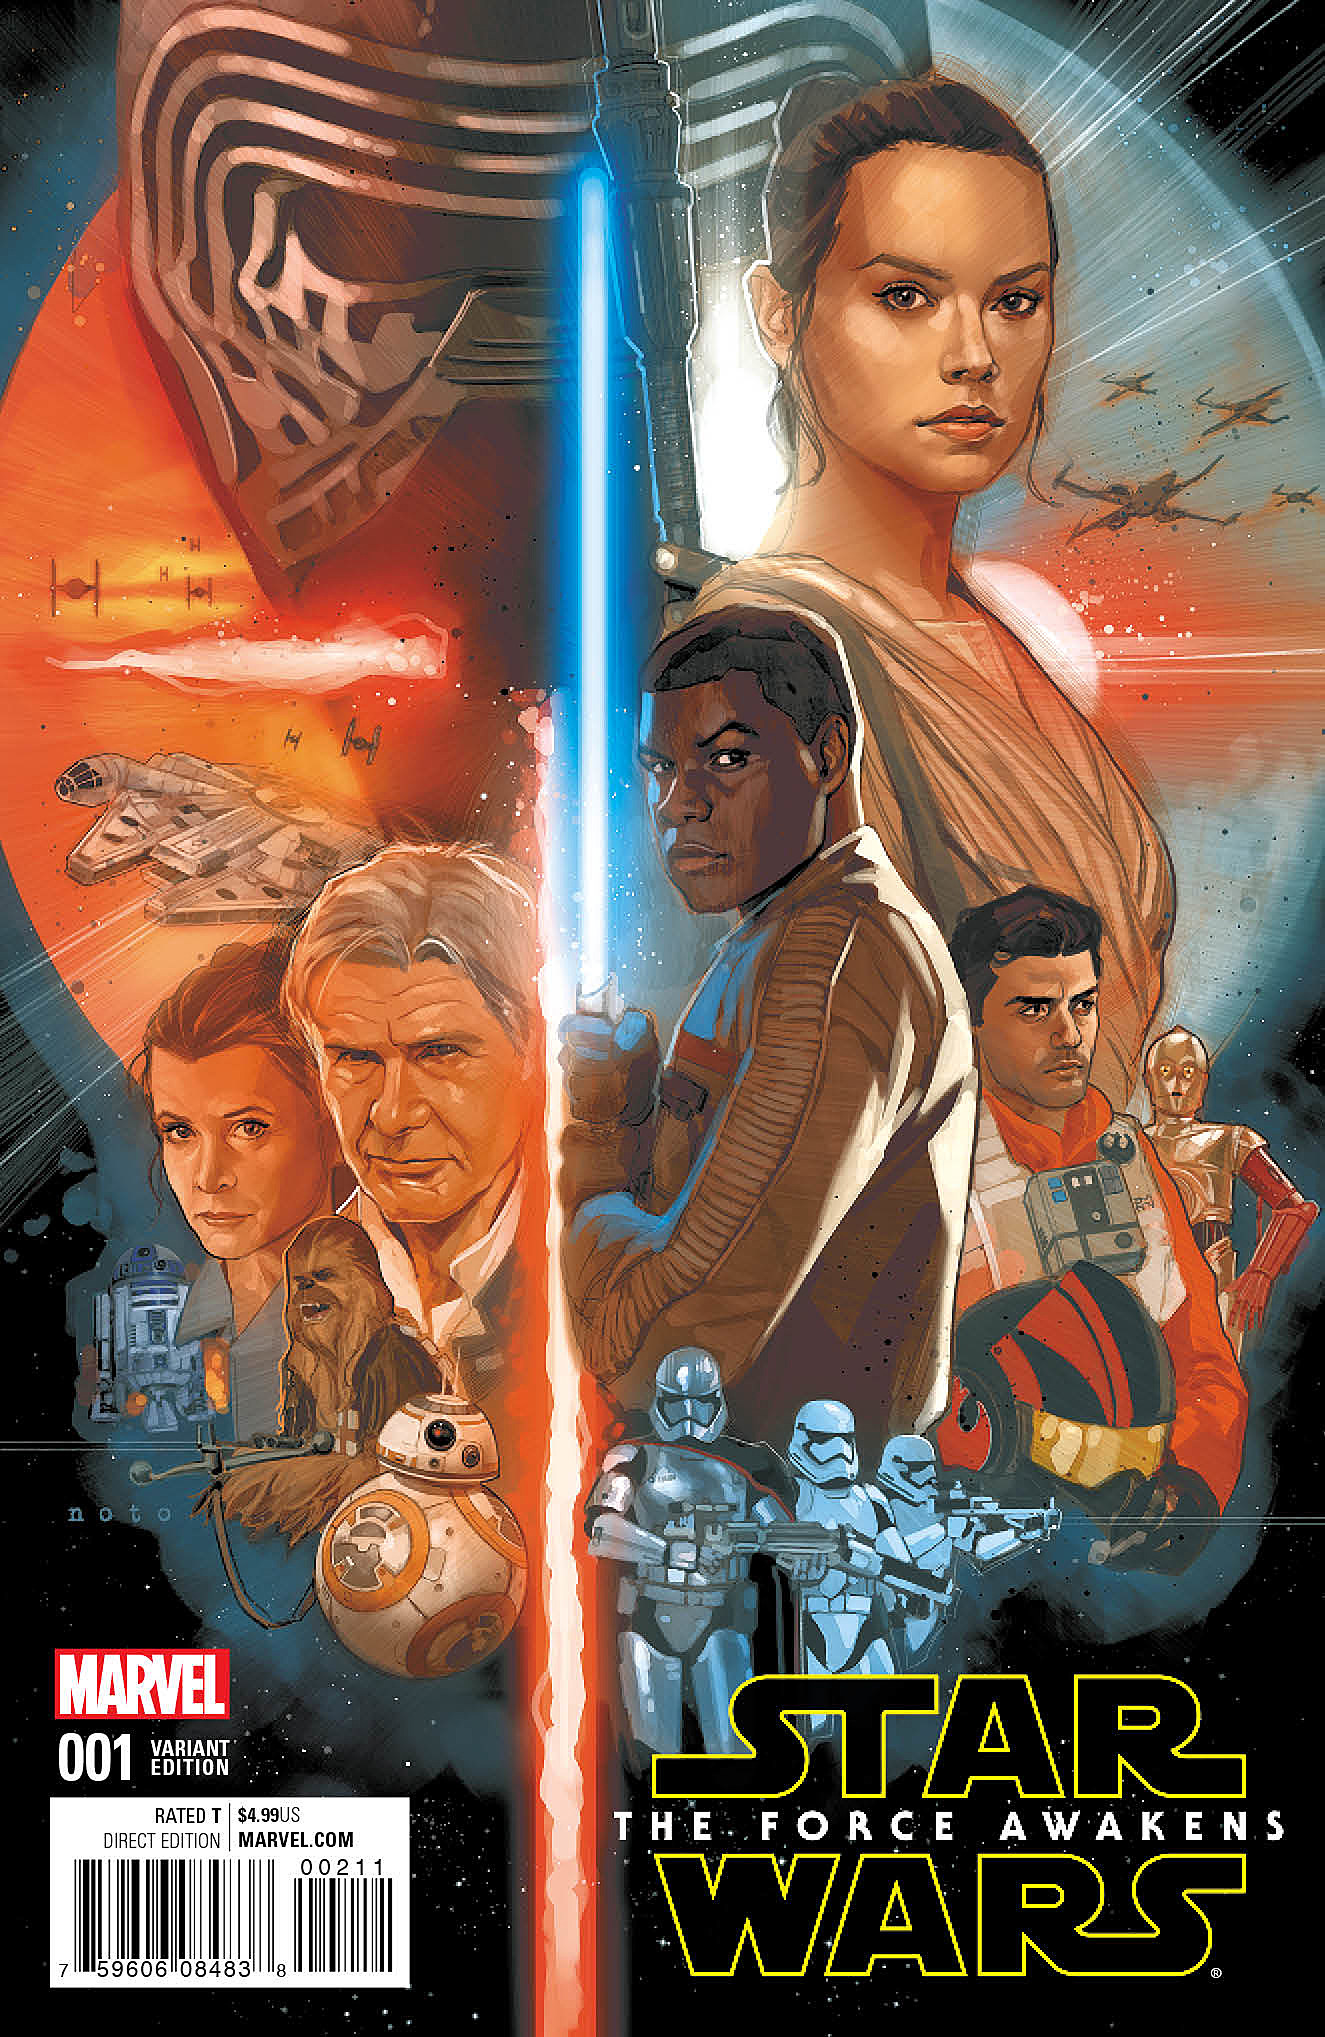 Star_Wars_The_Force_Awakens_1_Noto_Variant.jpg (630×968)